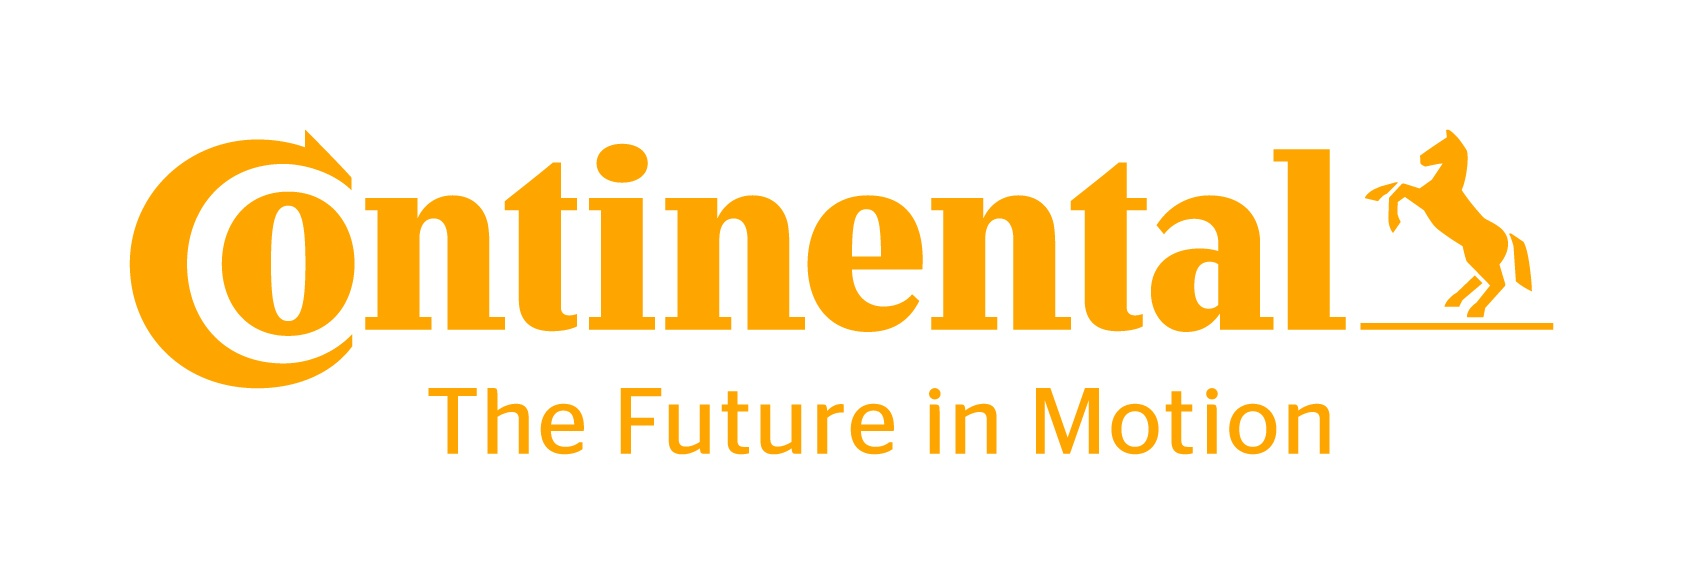 continental_logo_tagline_yellow_srgb_jpg-data_1682